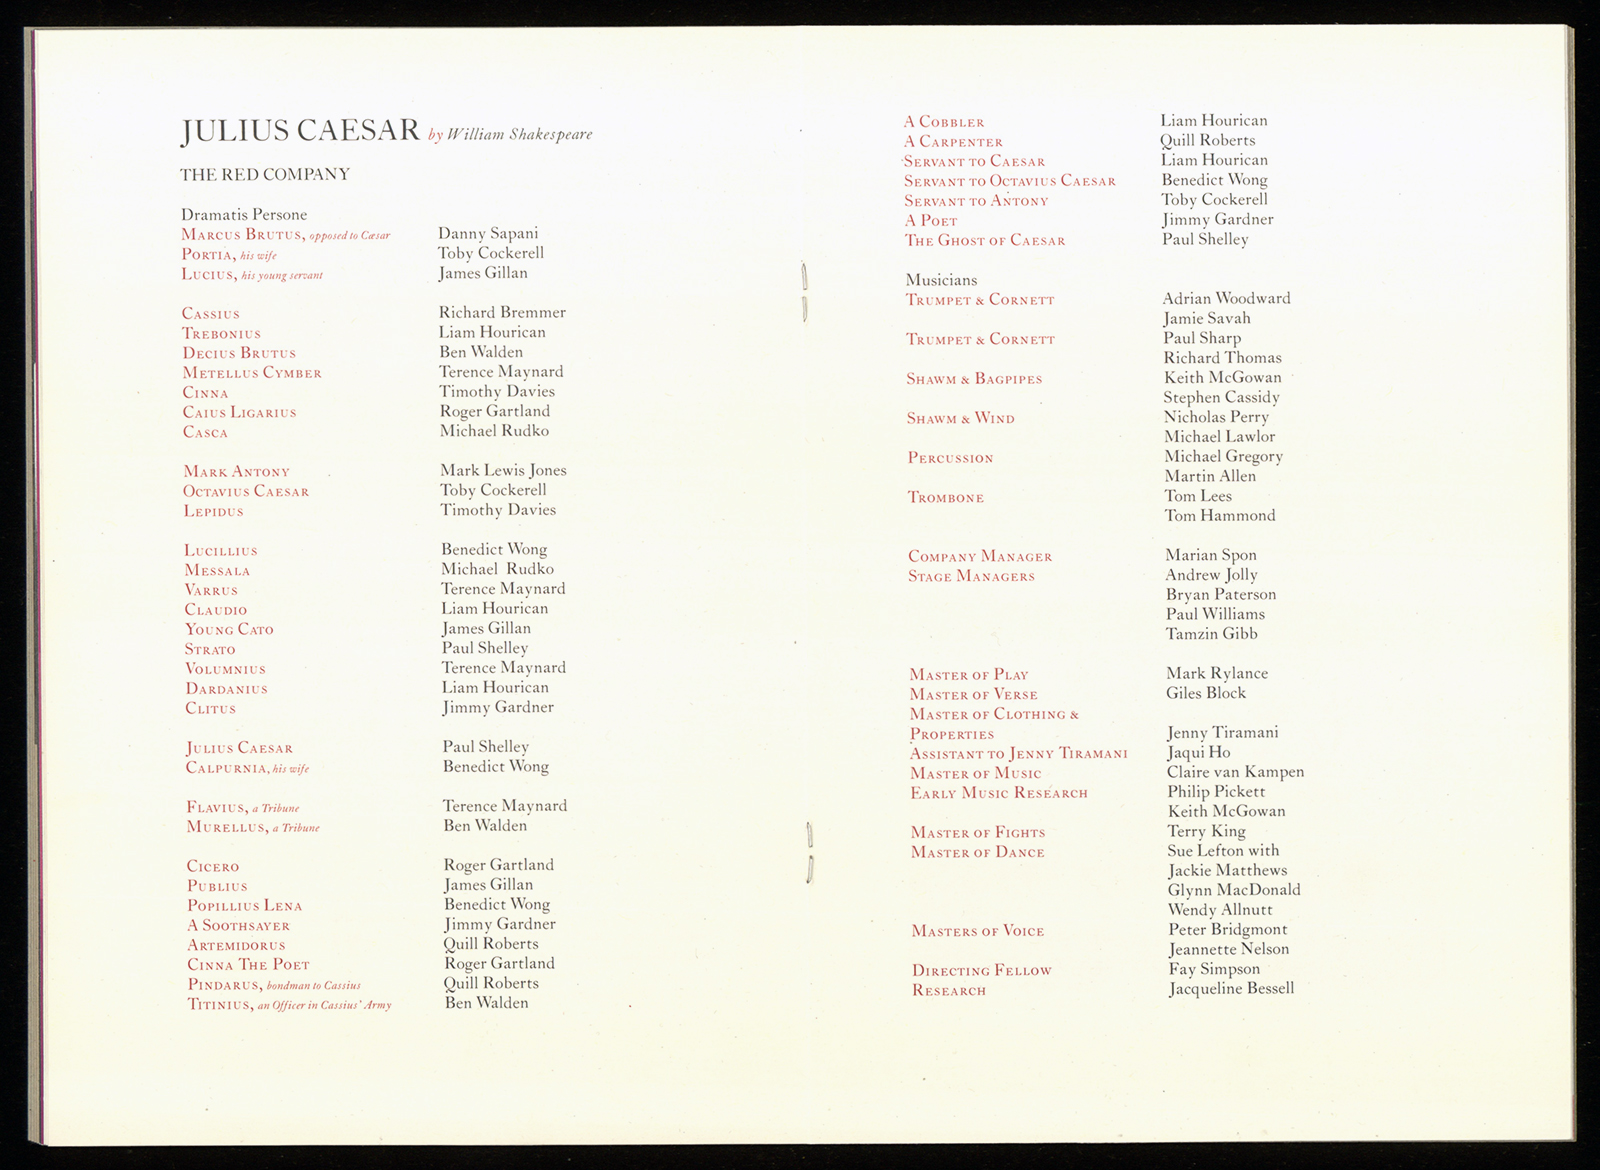 A programme listing the names of the cast and creative team.